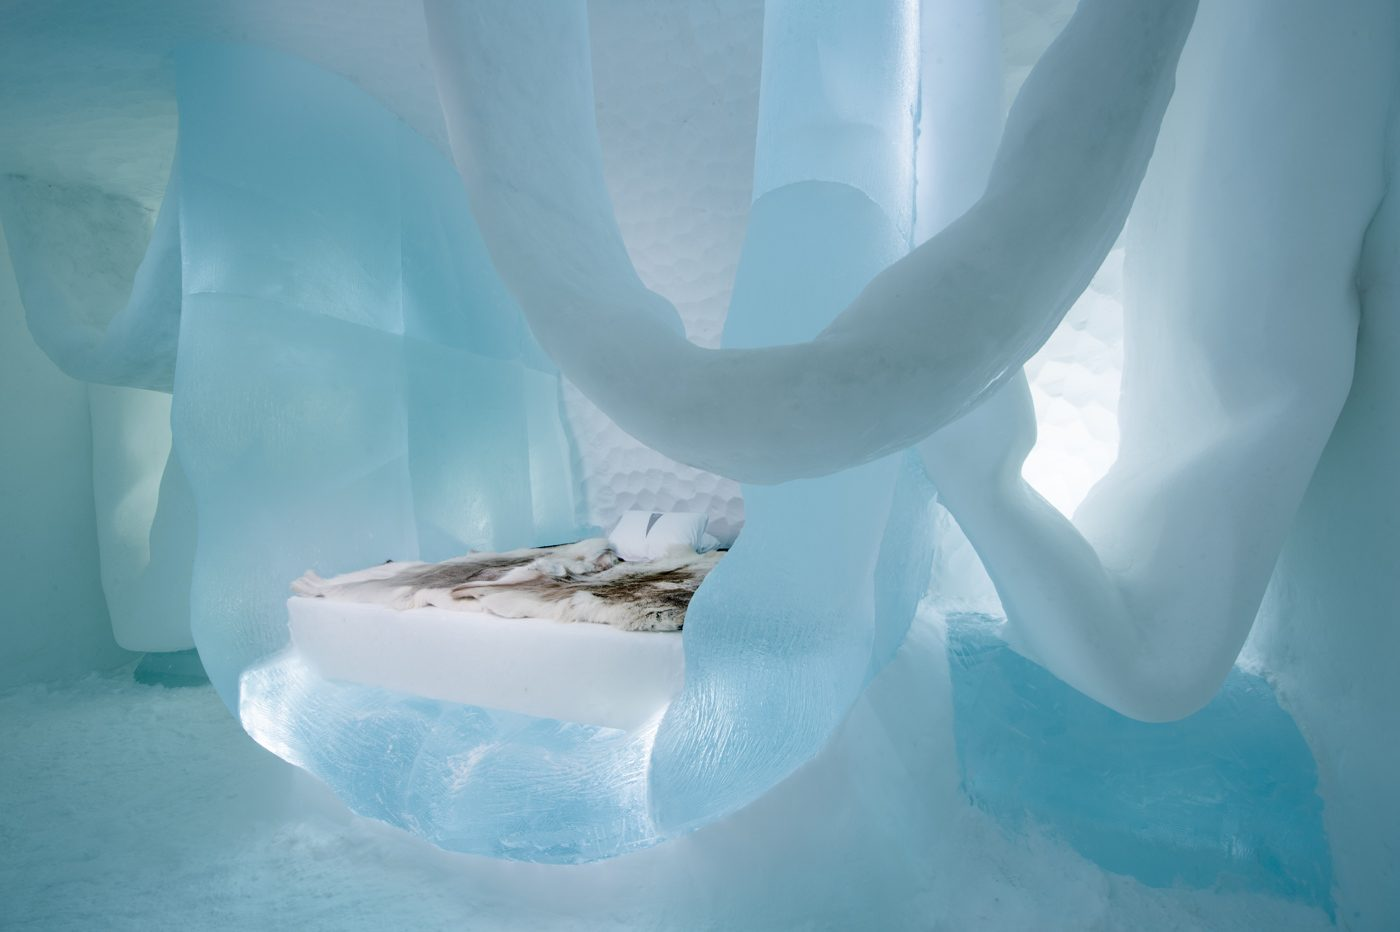 art-suite-hang-in-there-icehotel-28-1400x932.jpg